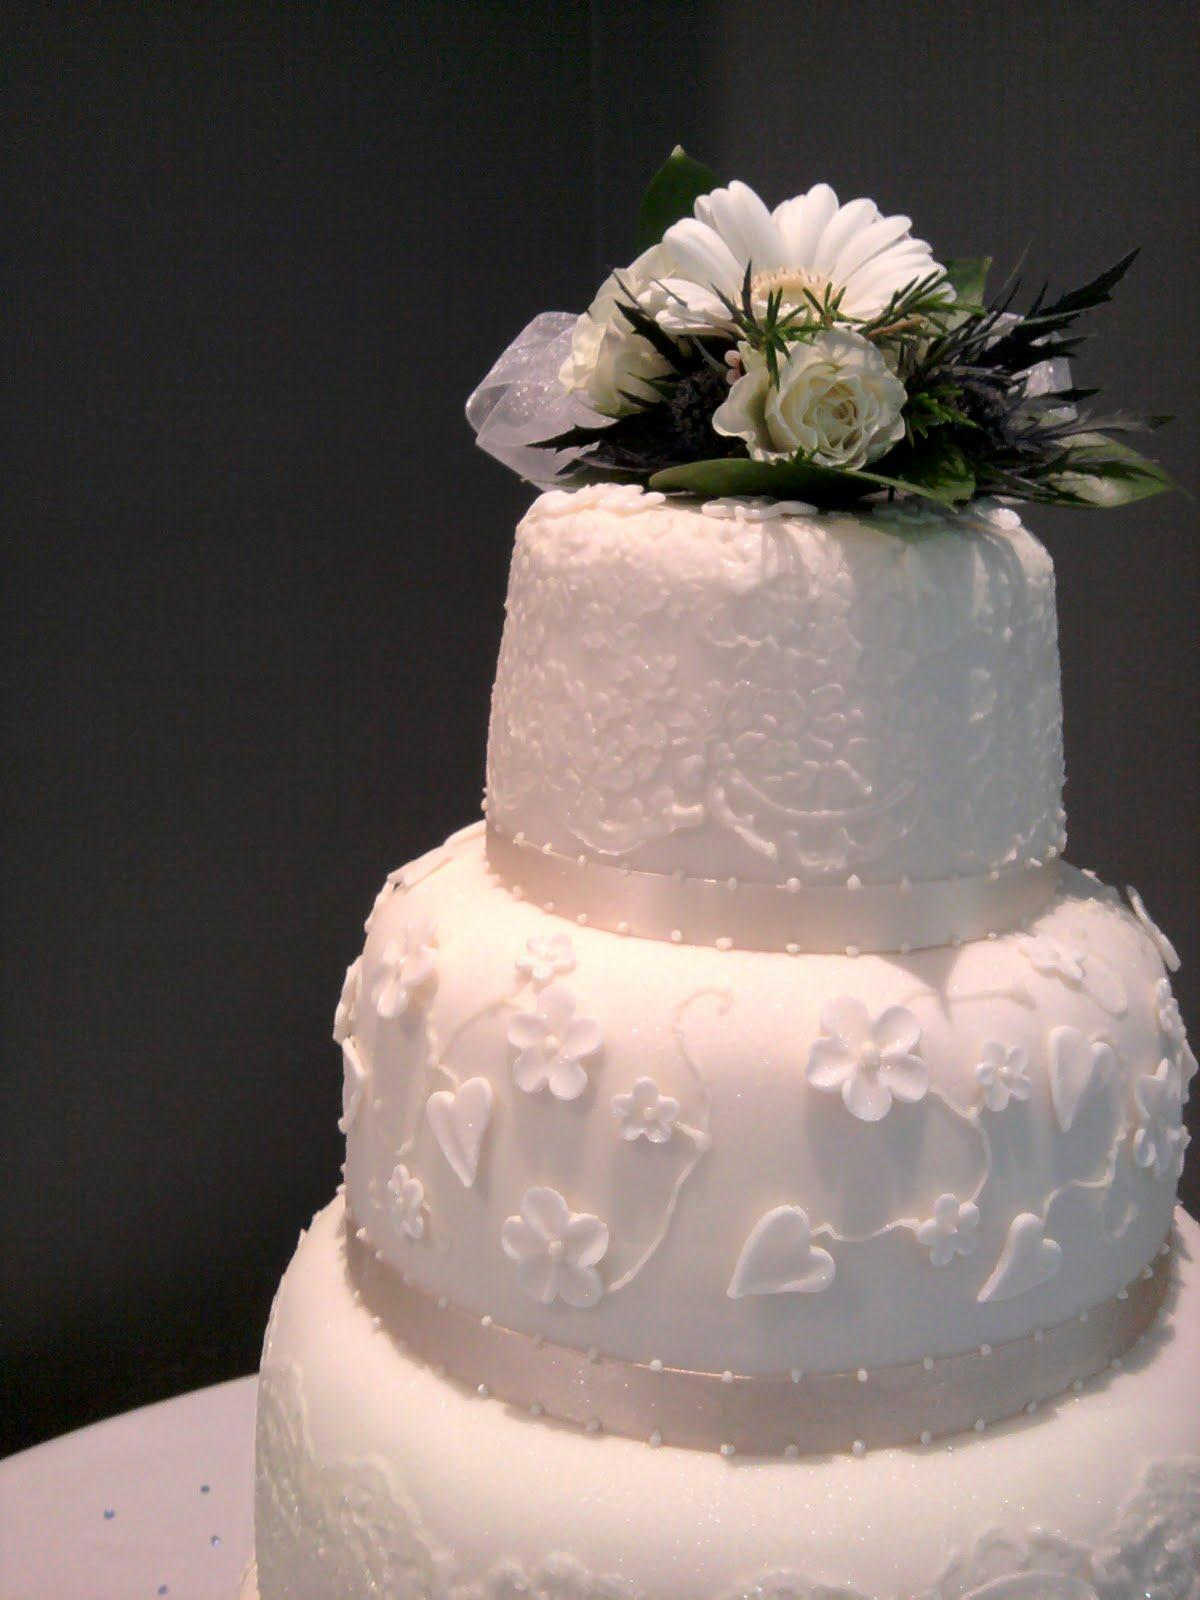 ever tiered wedding cake.